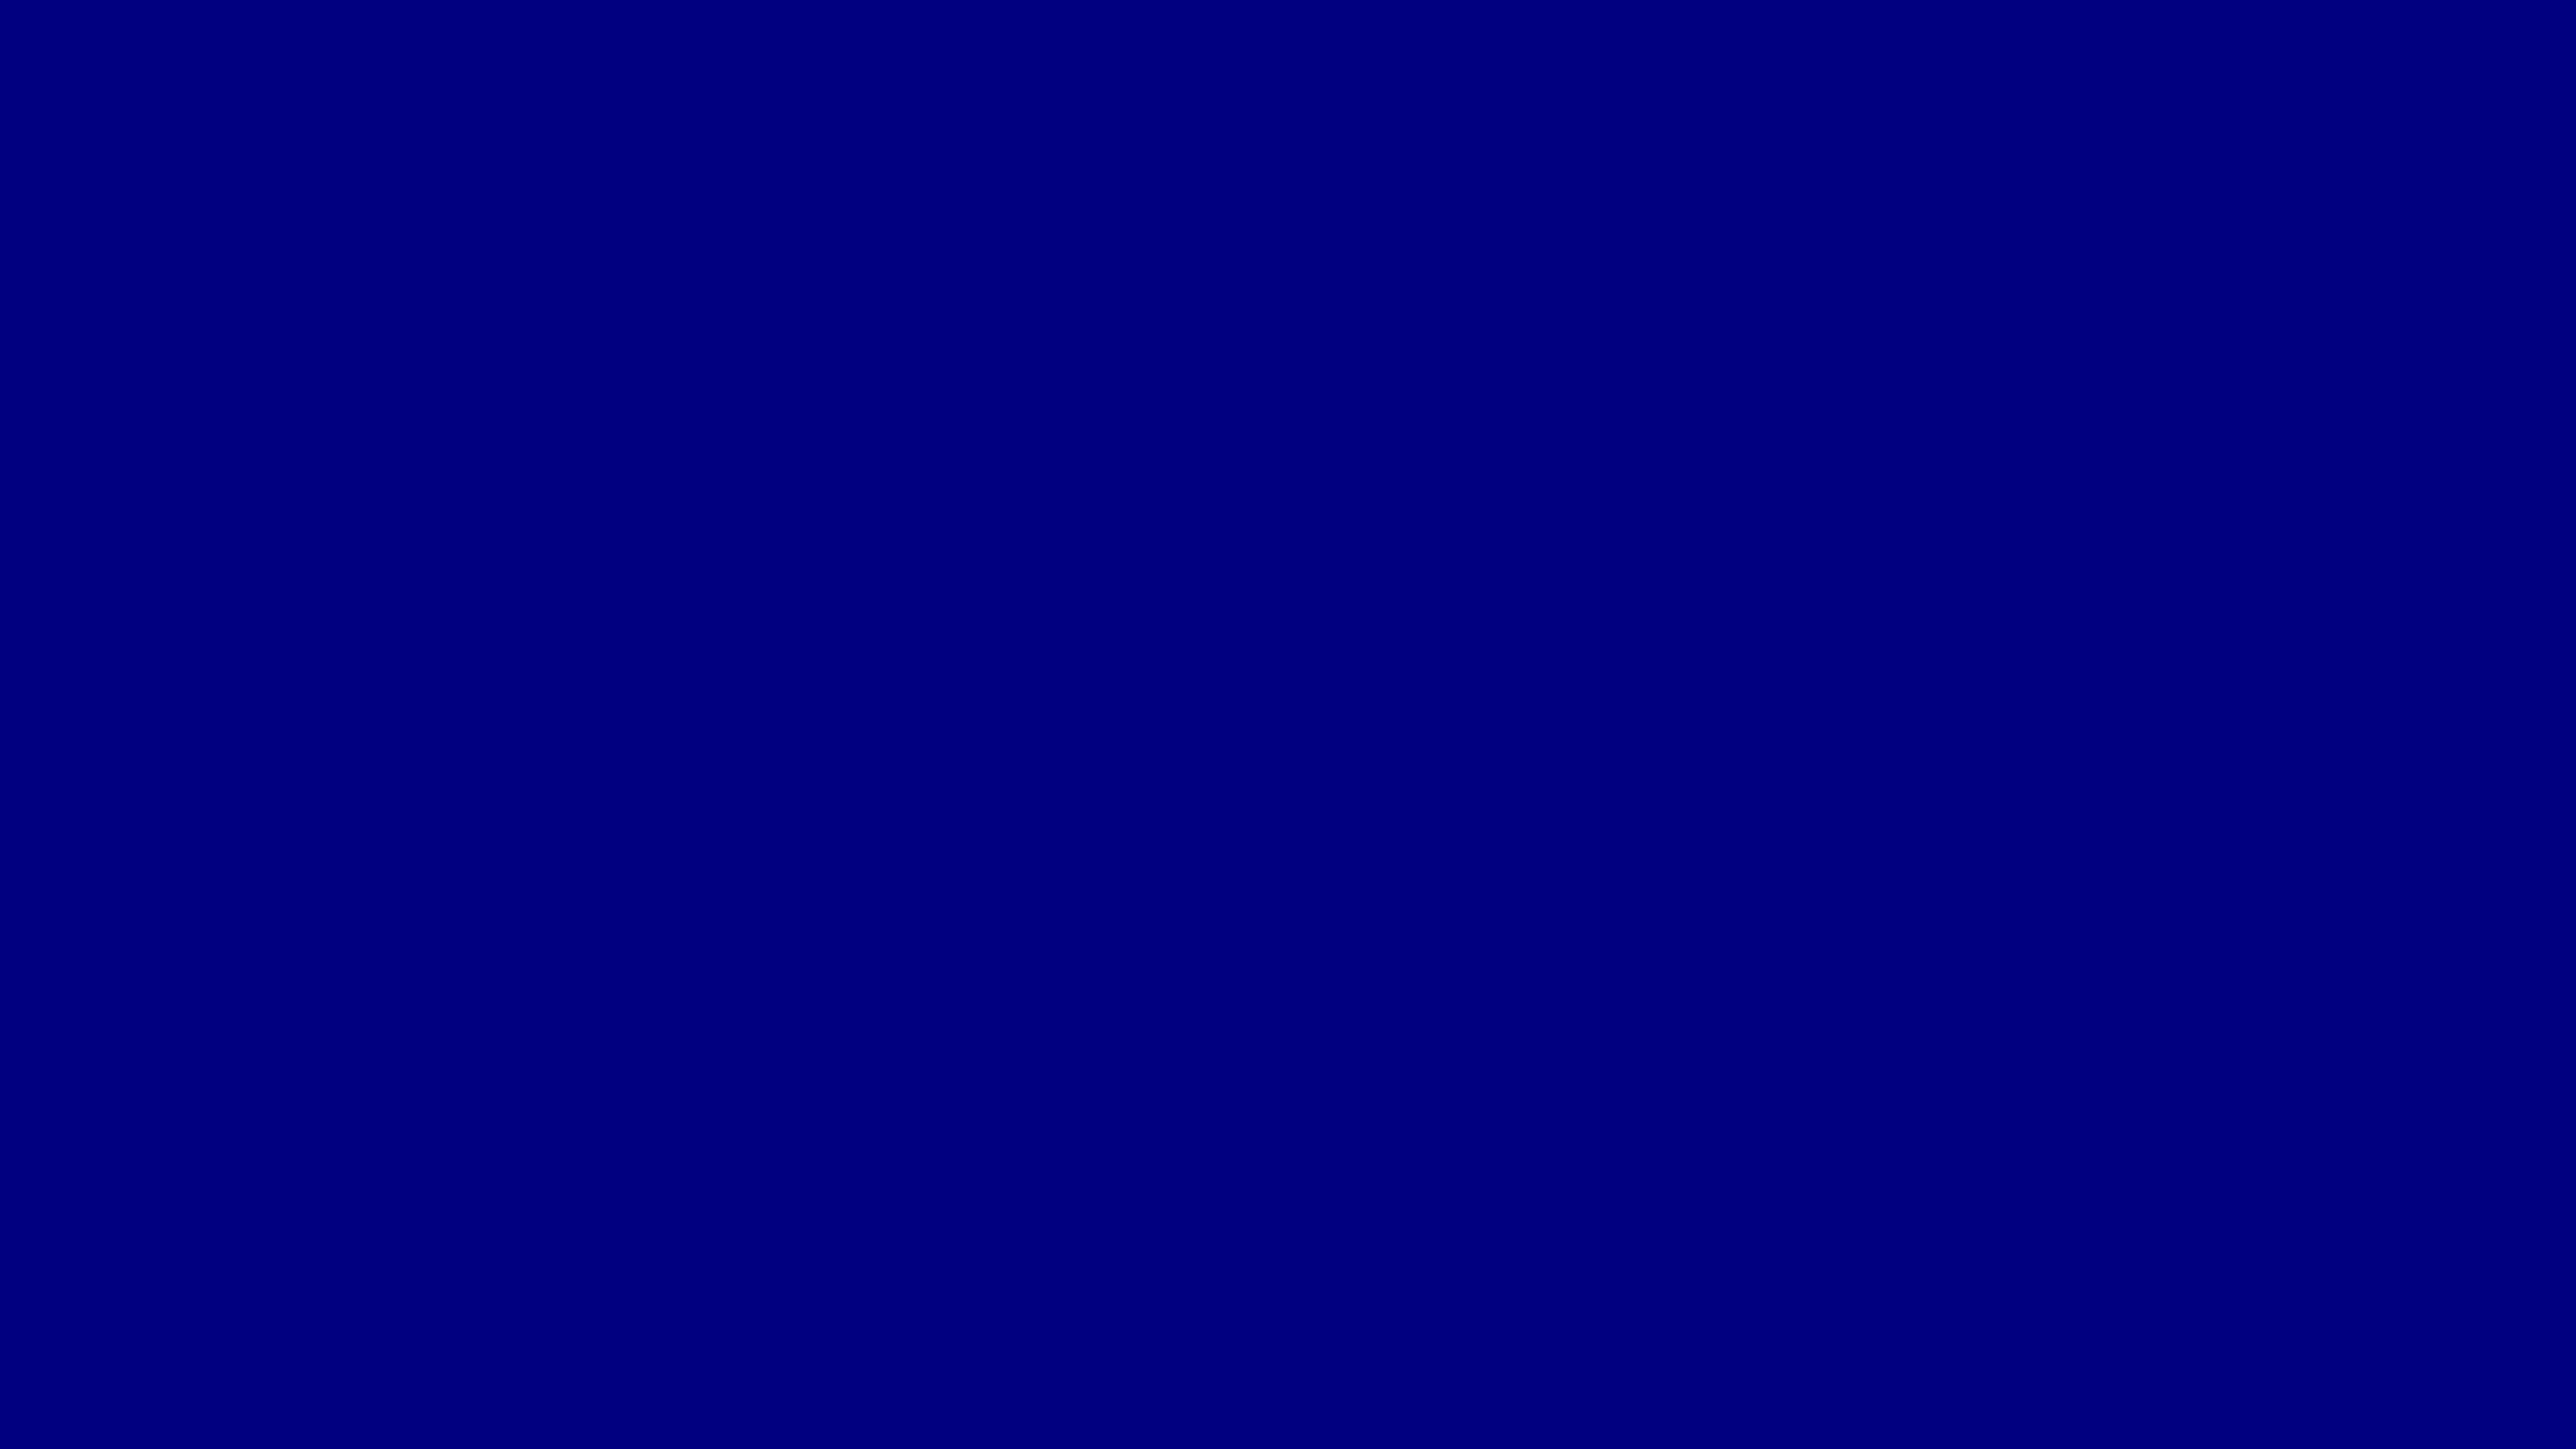 3840x2160 Navy Blue Solid Color Background